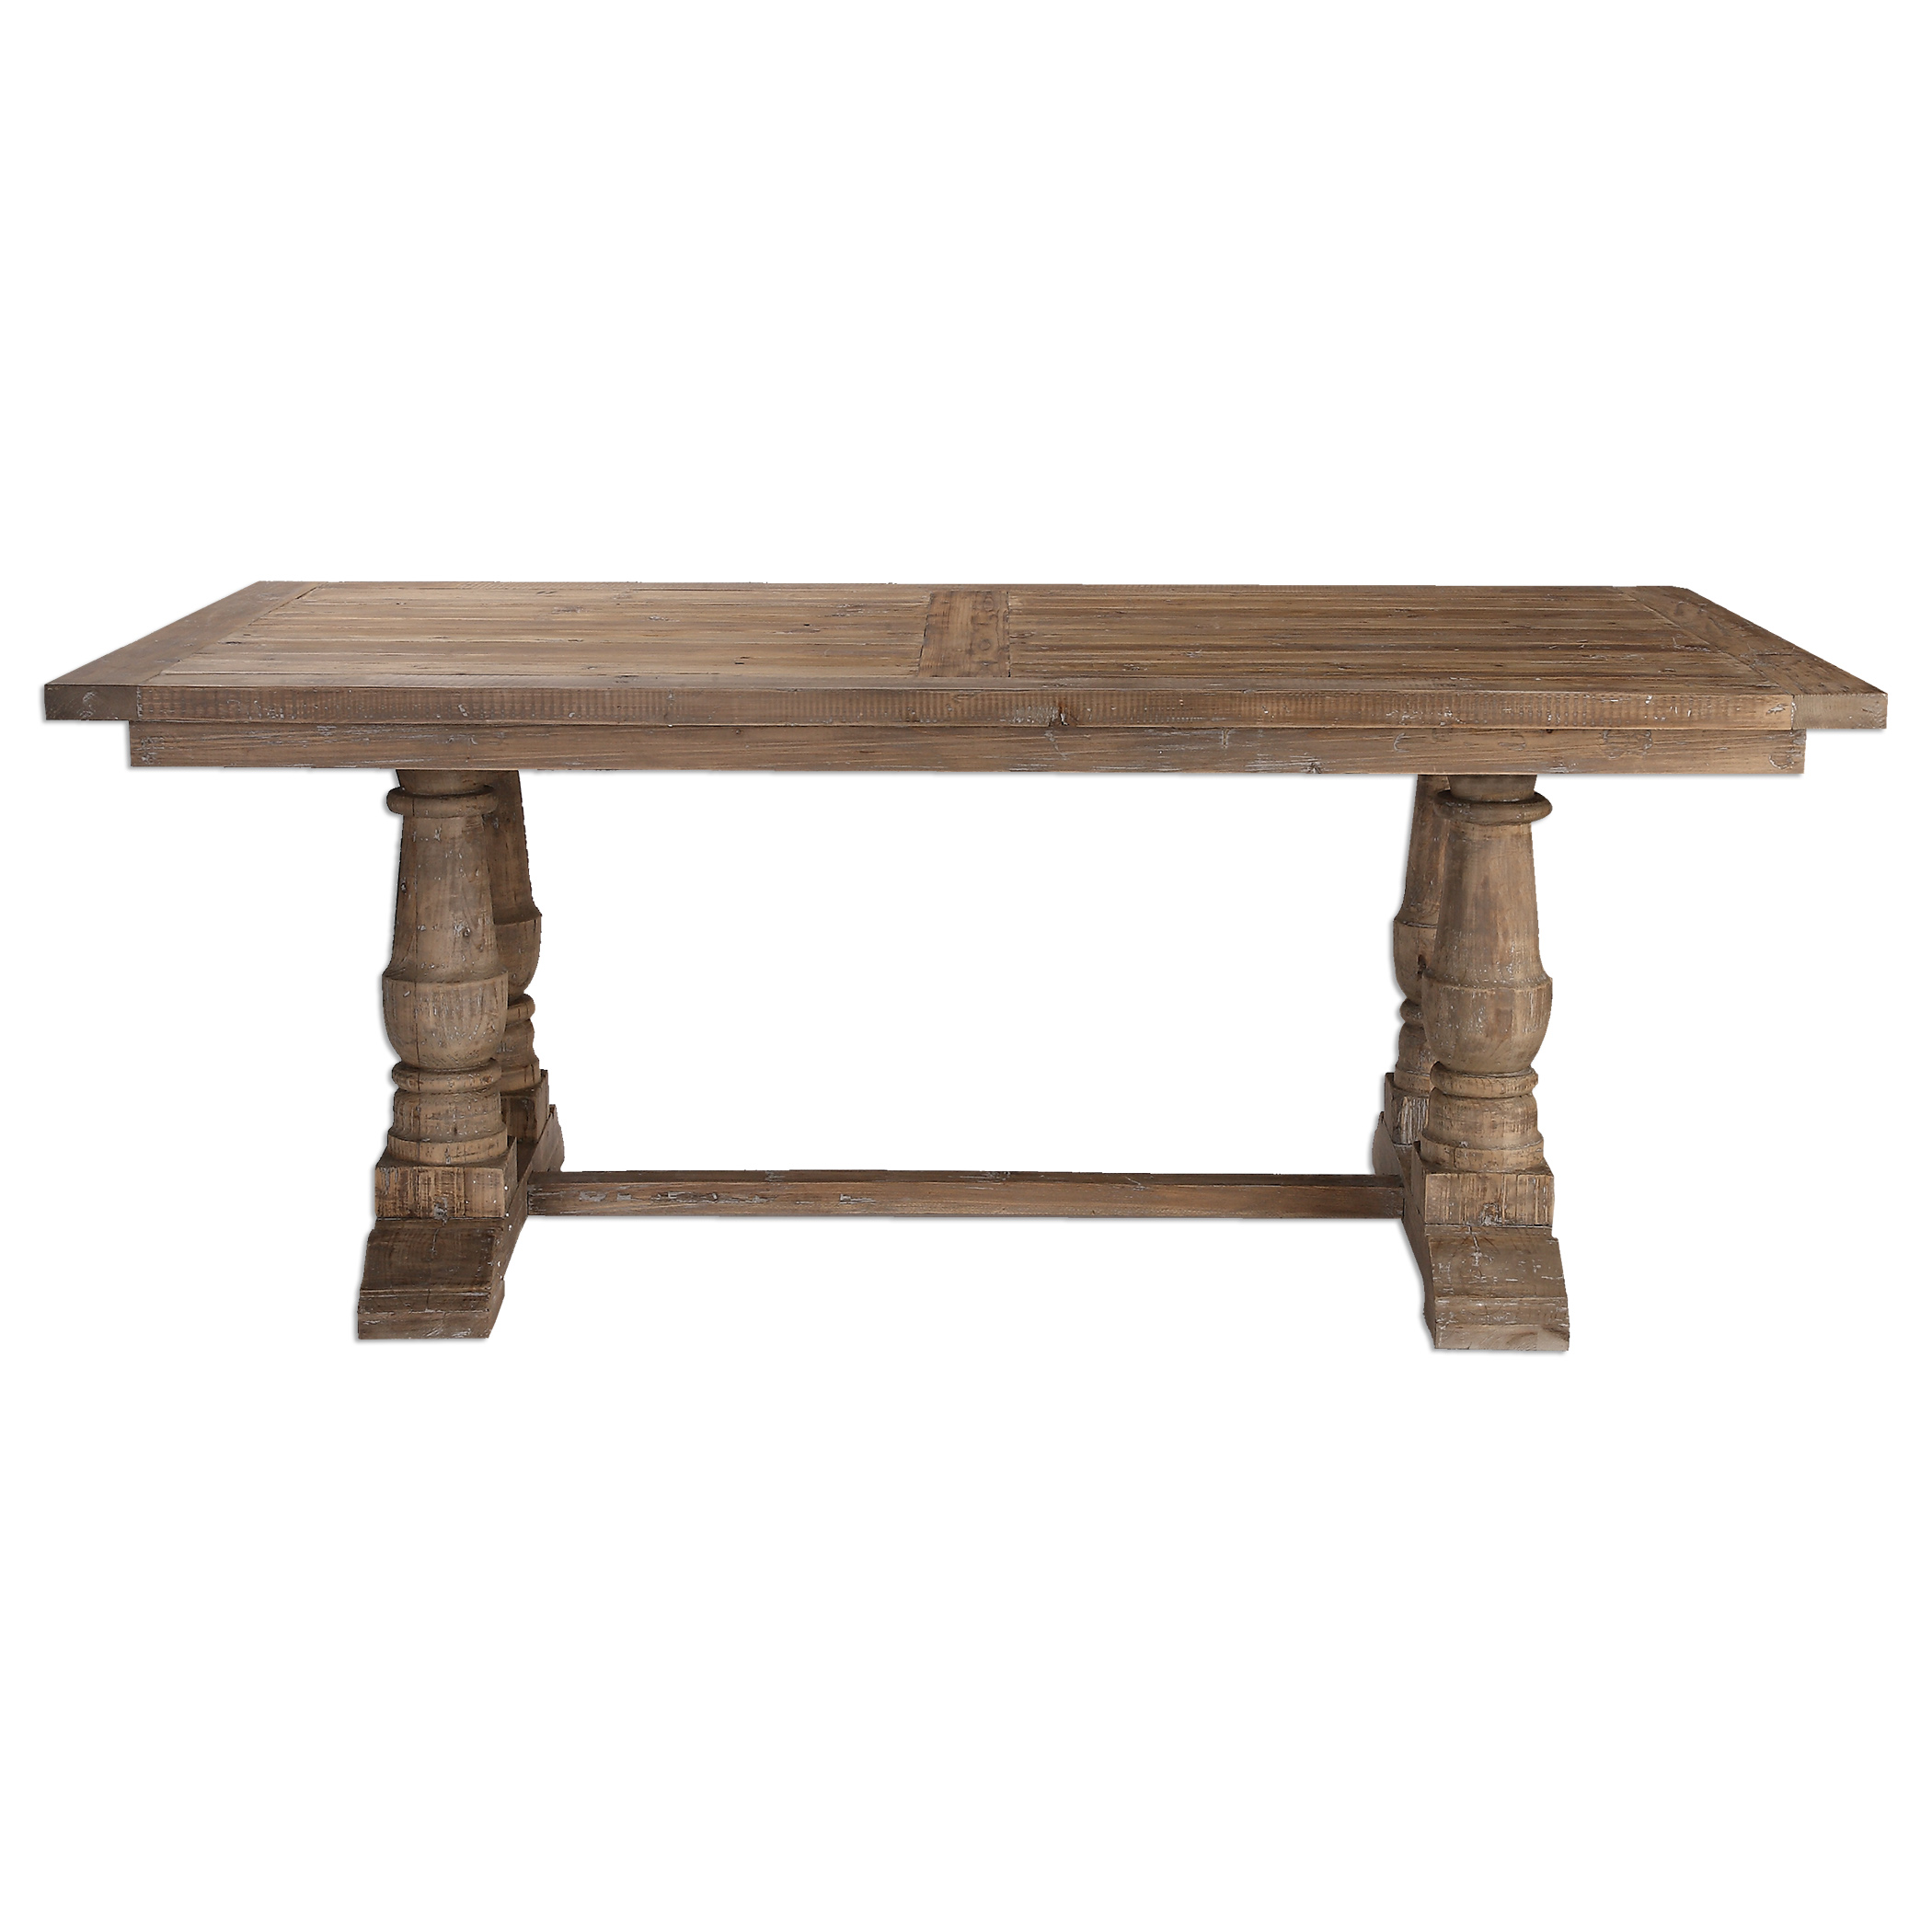 Accent Furniture Stratford  Salvaged Wood Dining Table by Uttermost at Upper Room Home Furnishings